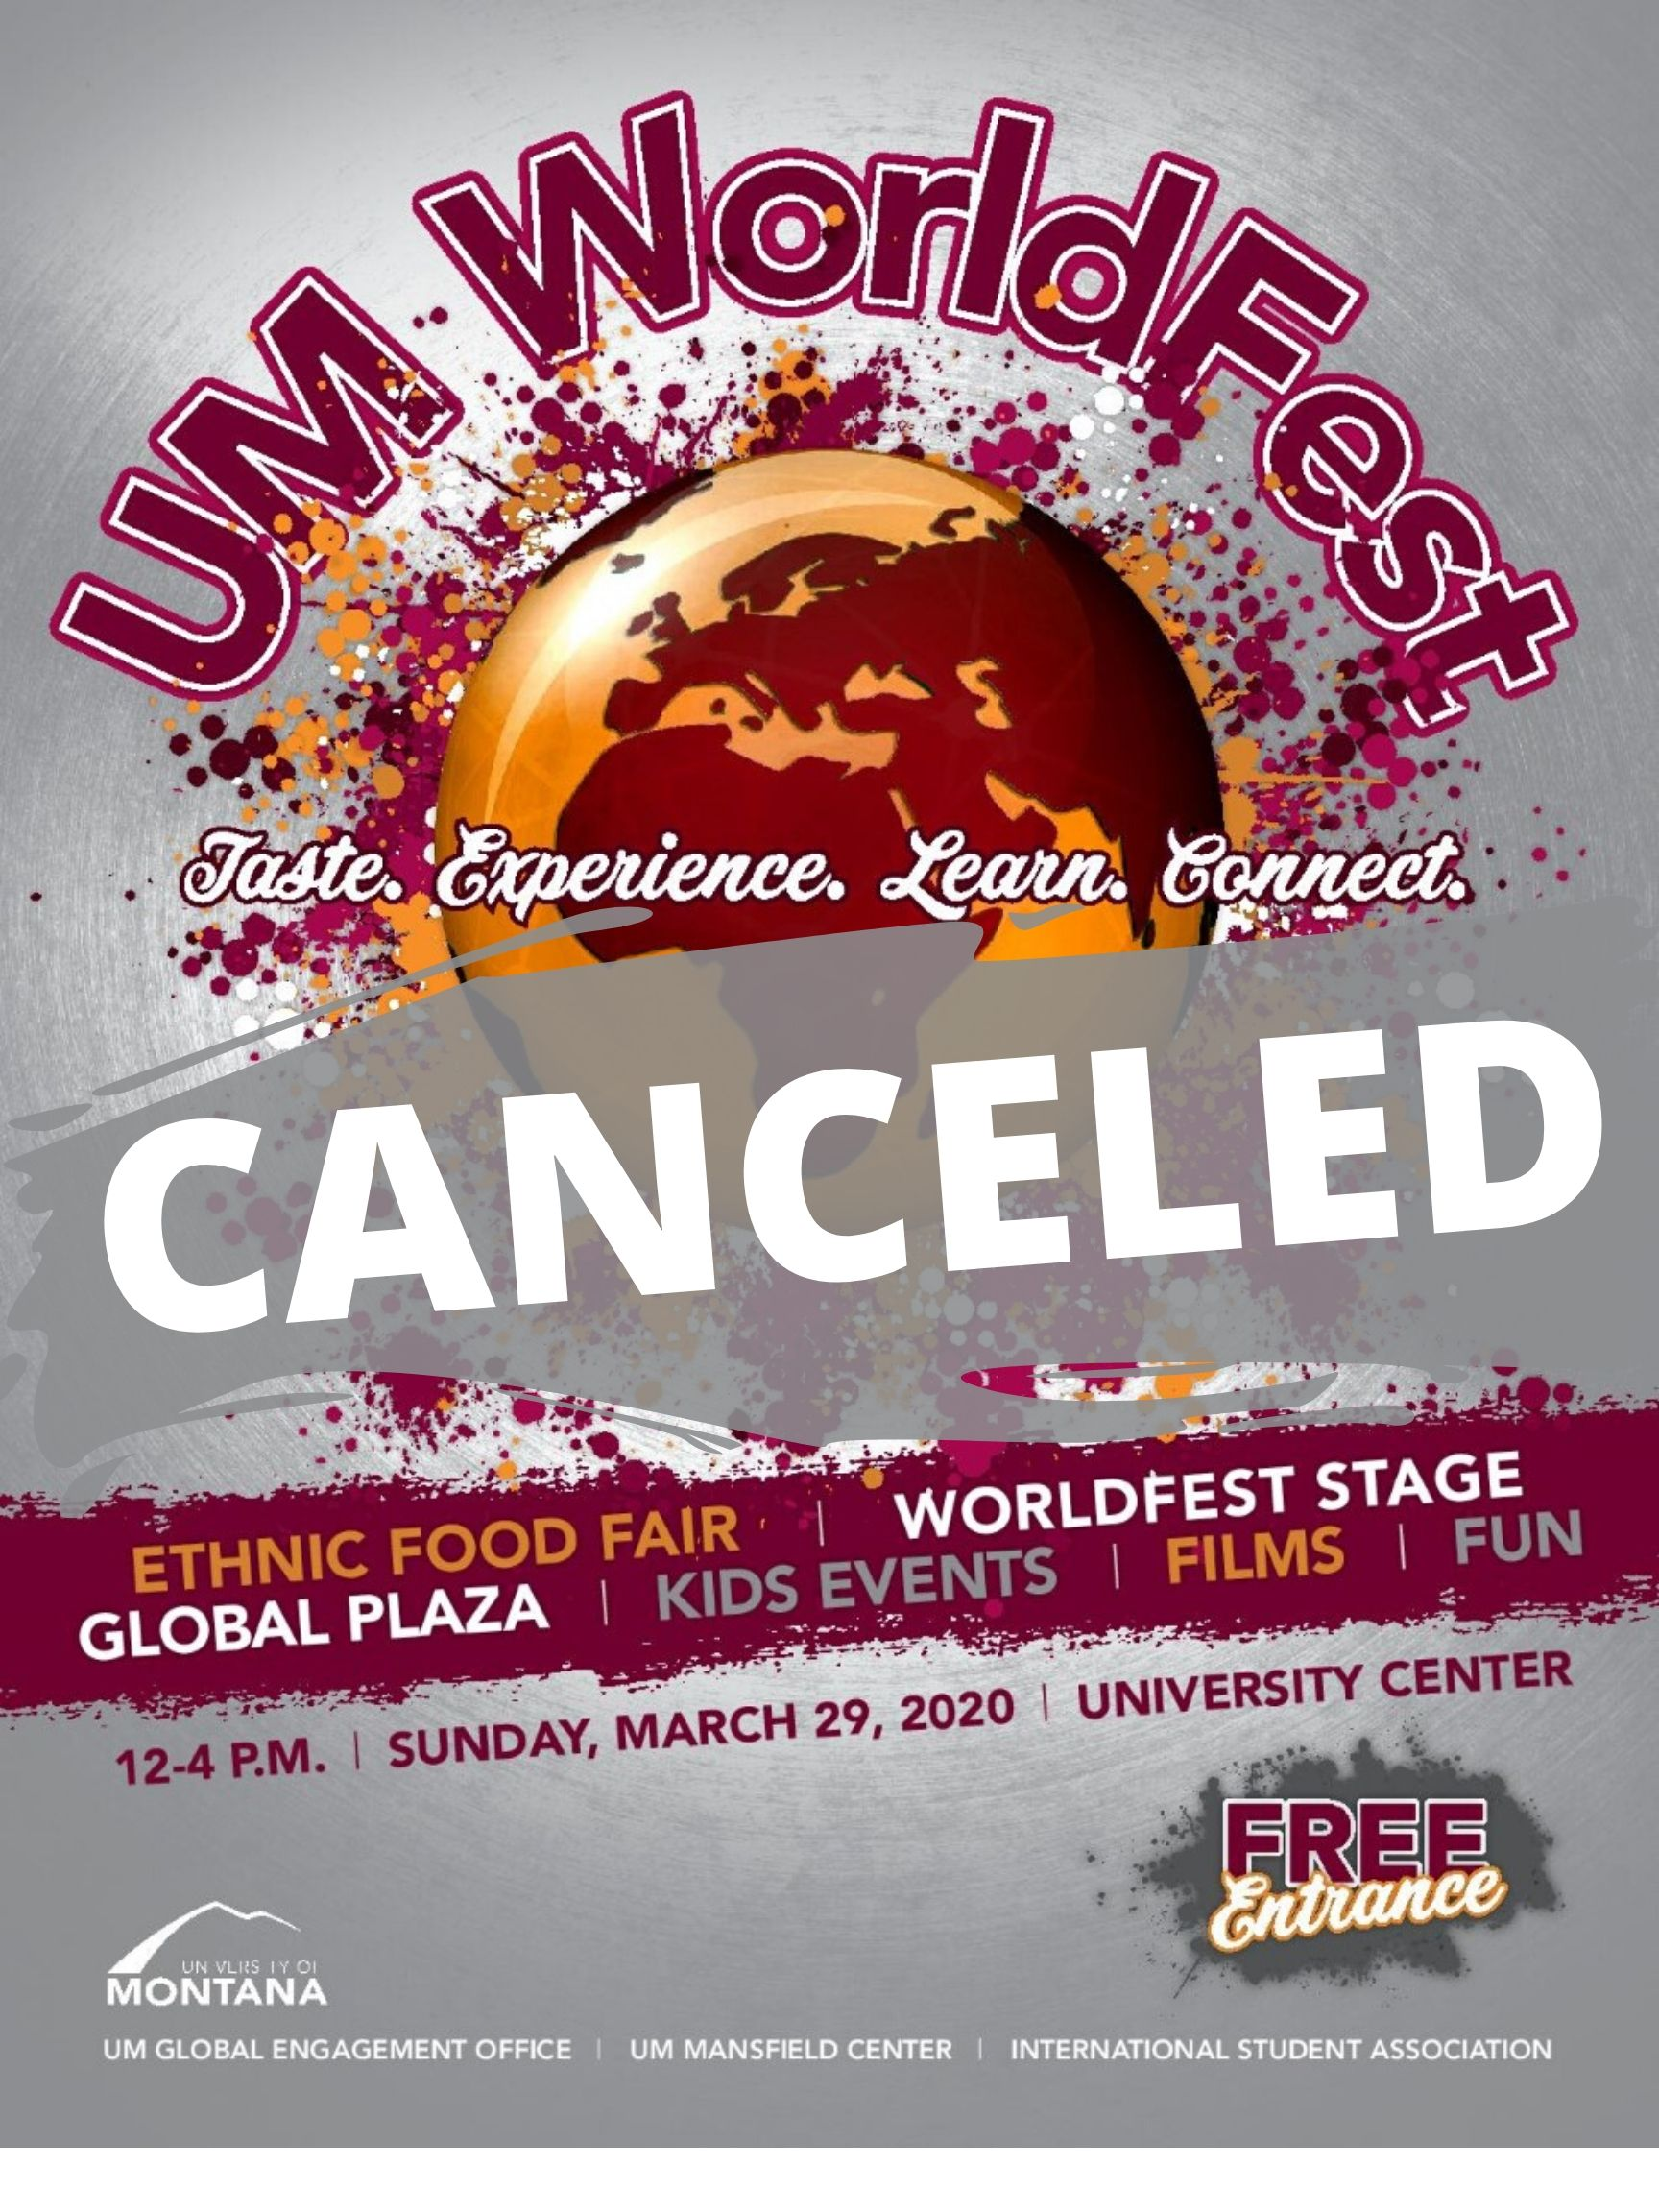 This event is Canceled, This flyer is an advertisement for the University of Montana World Fest. This world fest contains an ethnic food fair, a world fest stage, a global plaza, kids events, films and above all, fun! This event takes place on Sunday, March 29th, 2020 from 12-4 p.m. at the University Center. Canceled